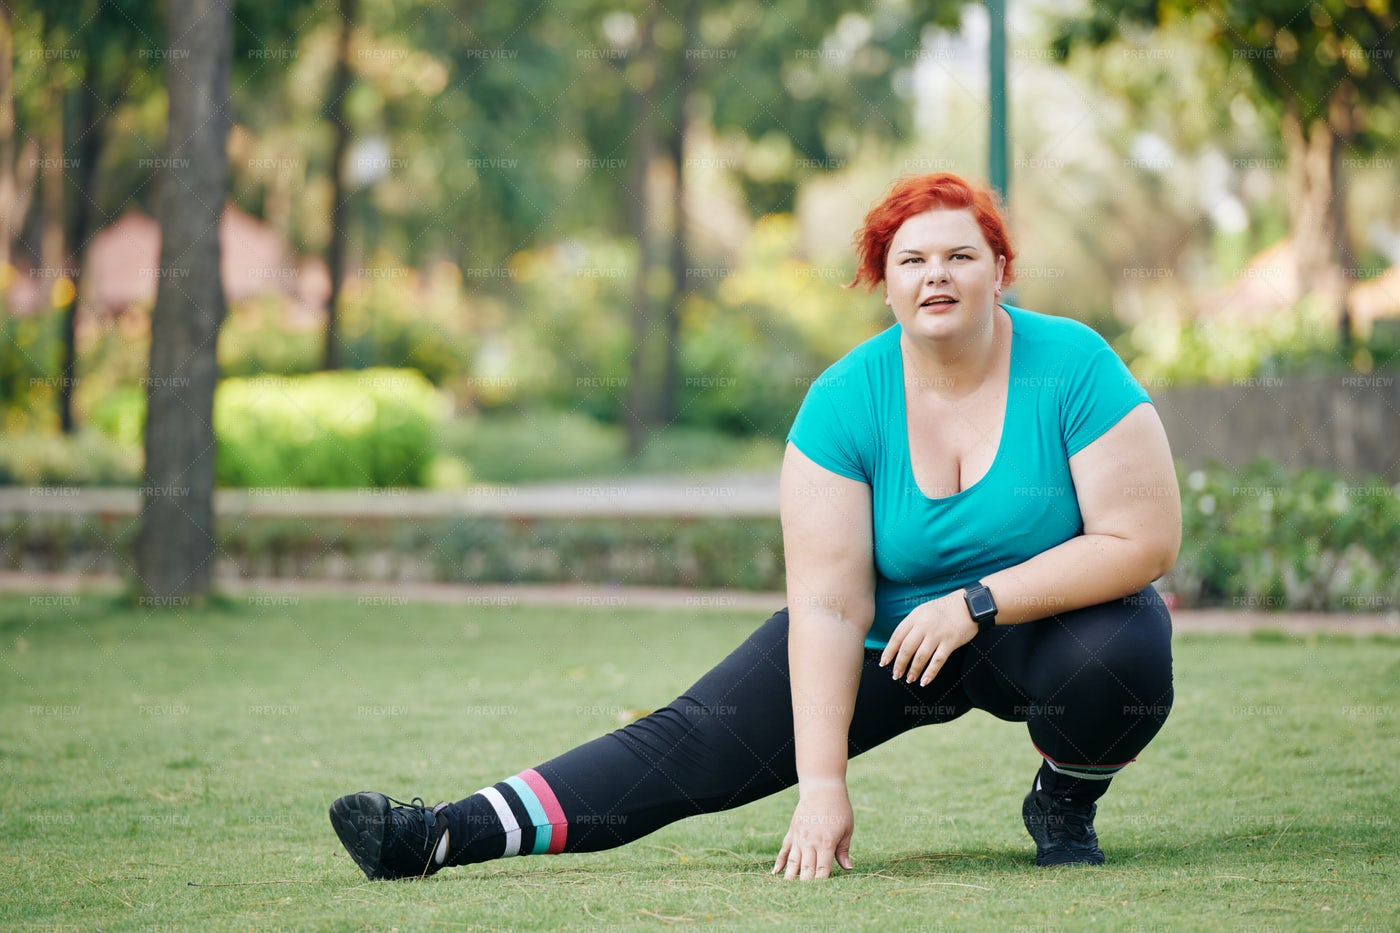 Woman Stretching Her Legs: Stock Photos